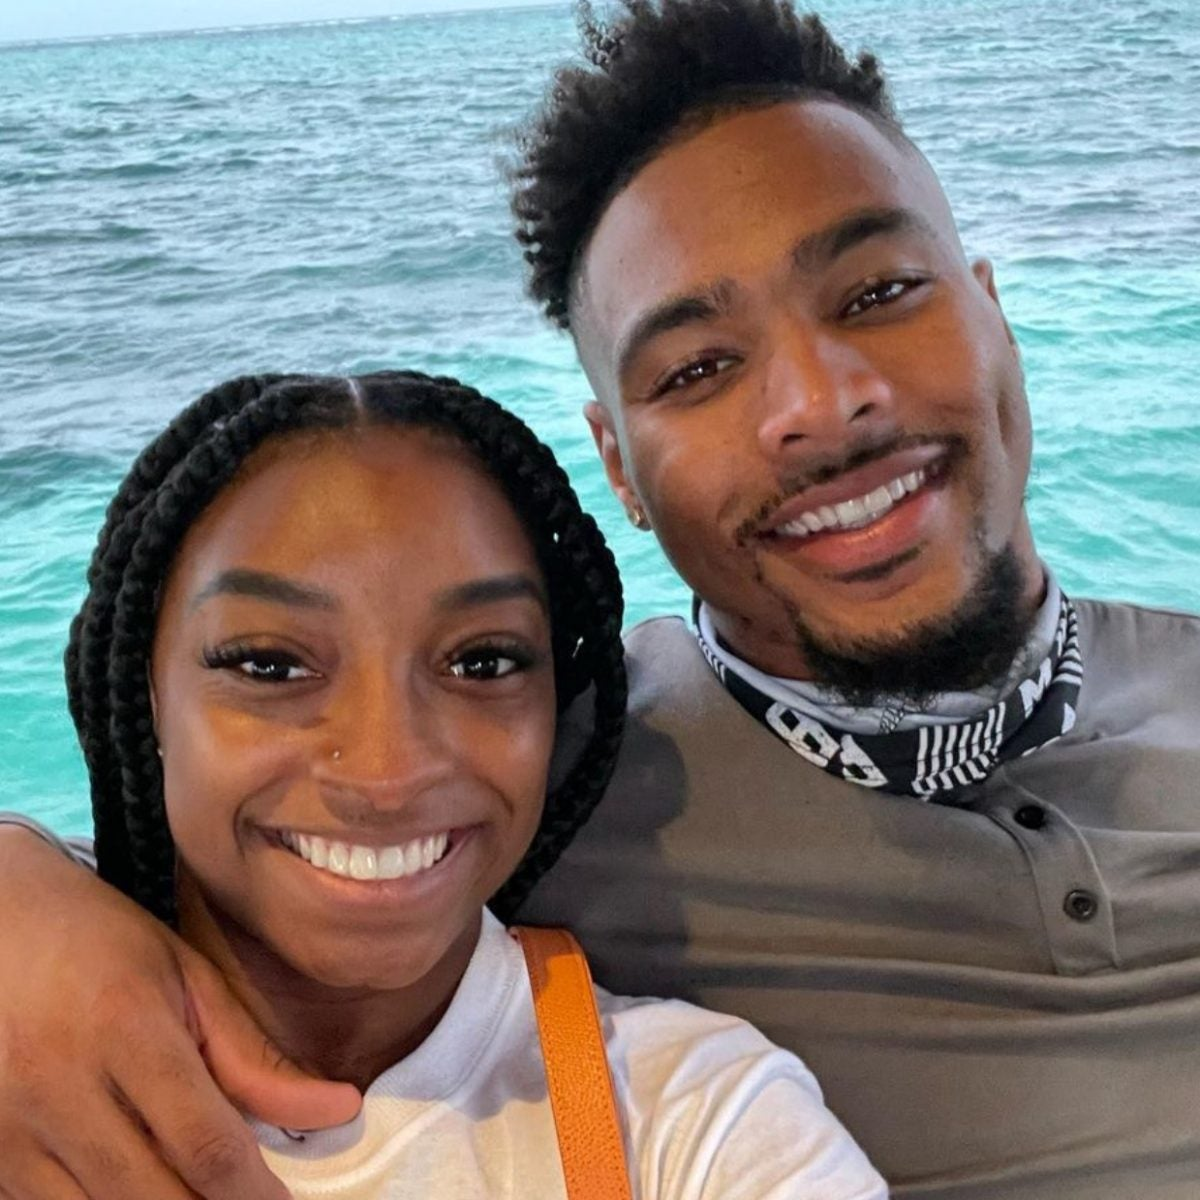 Simone Biles' Boyfriend Publicly Praises Her Amid Support, Criticism: 'Imma Ride With You Through Whatever'